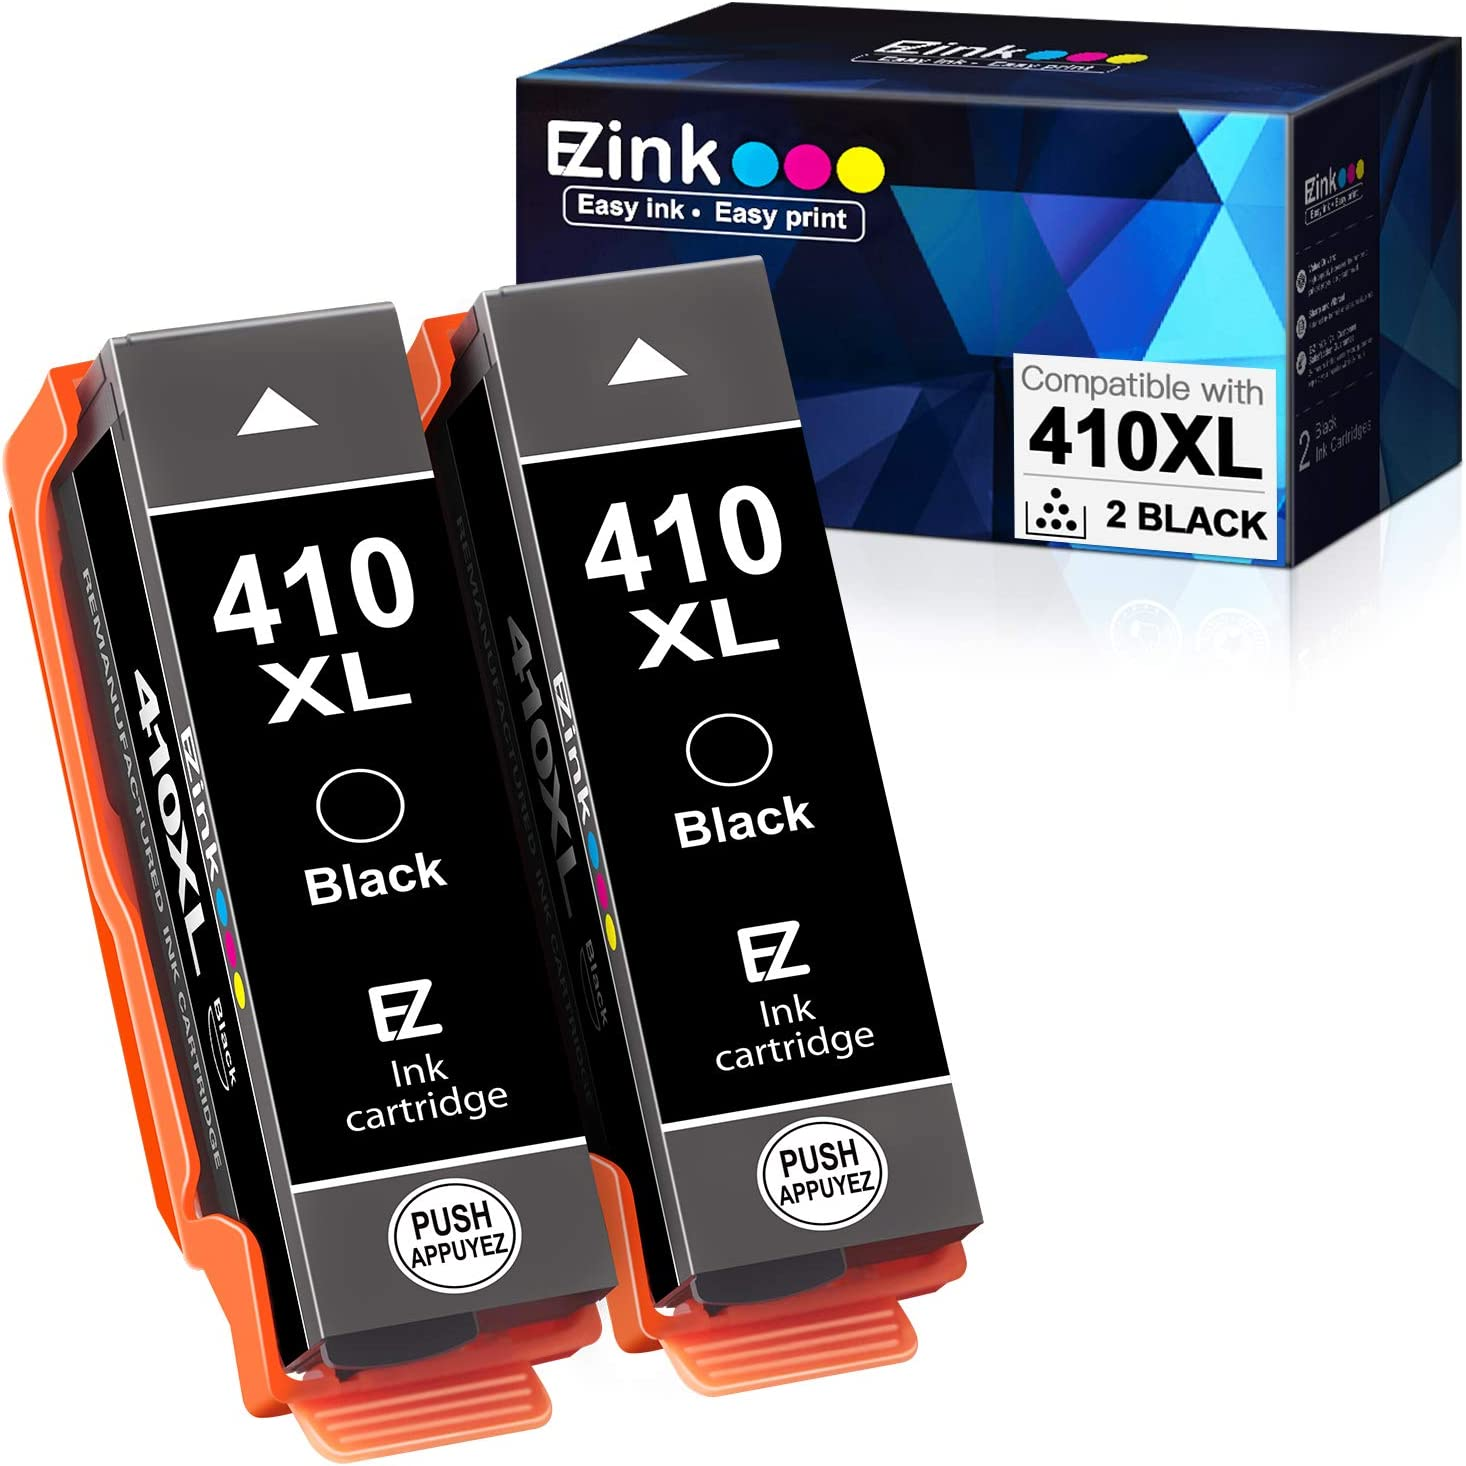 E-Z Ink (TM) Remanufactured Ink Cartridge Replacement for Epson 410XL 410 XL T410XL to use with Expression XP-640 XP-830 XP-7100 XP-530 XP-630 XP-635 (2 Black with The Newest Updated Chip)